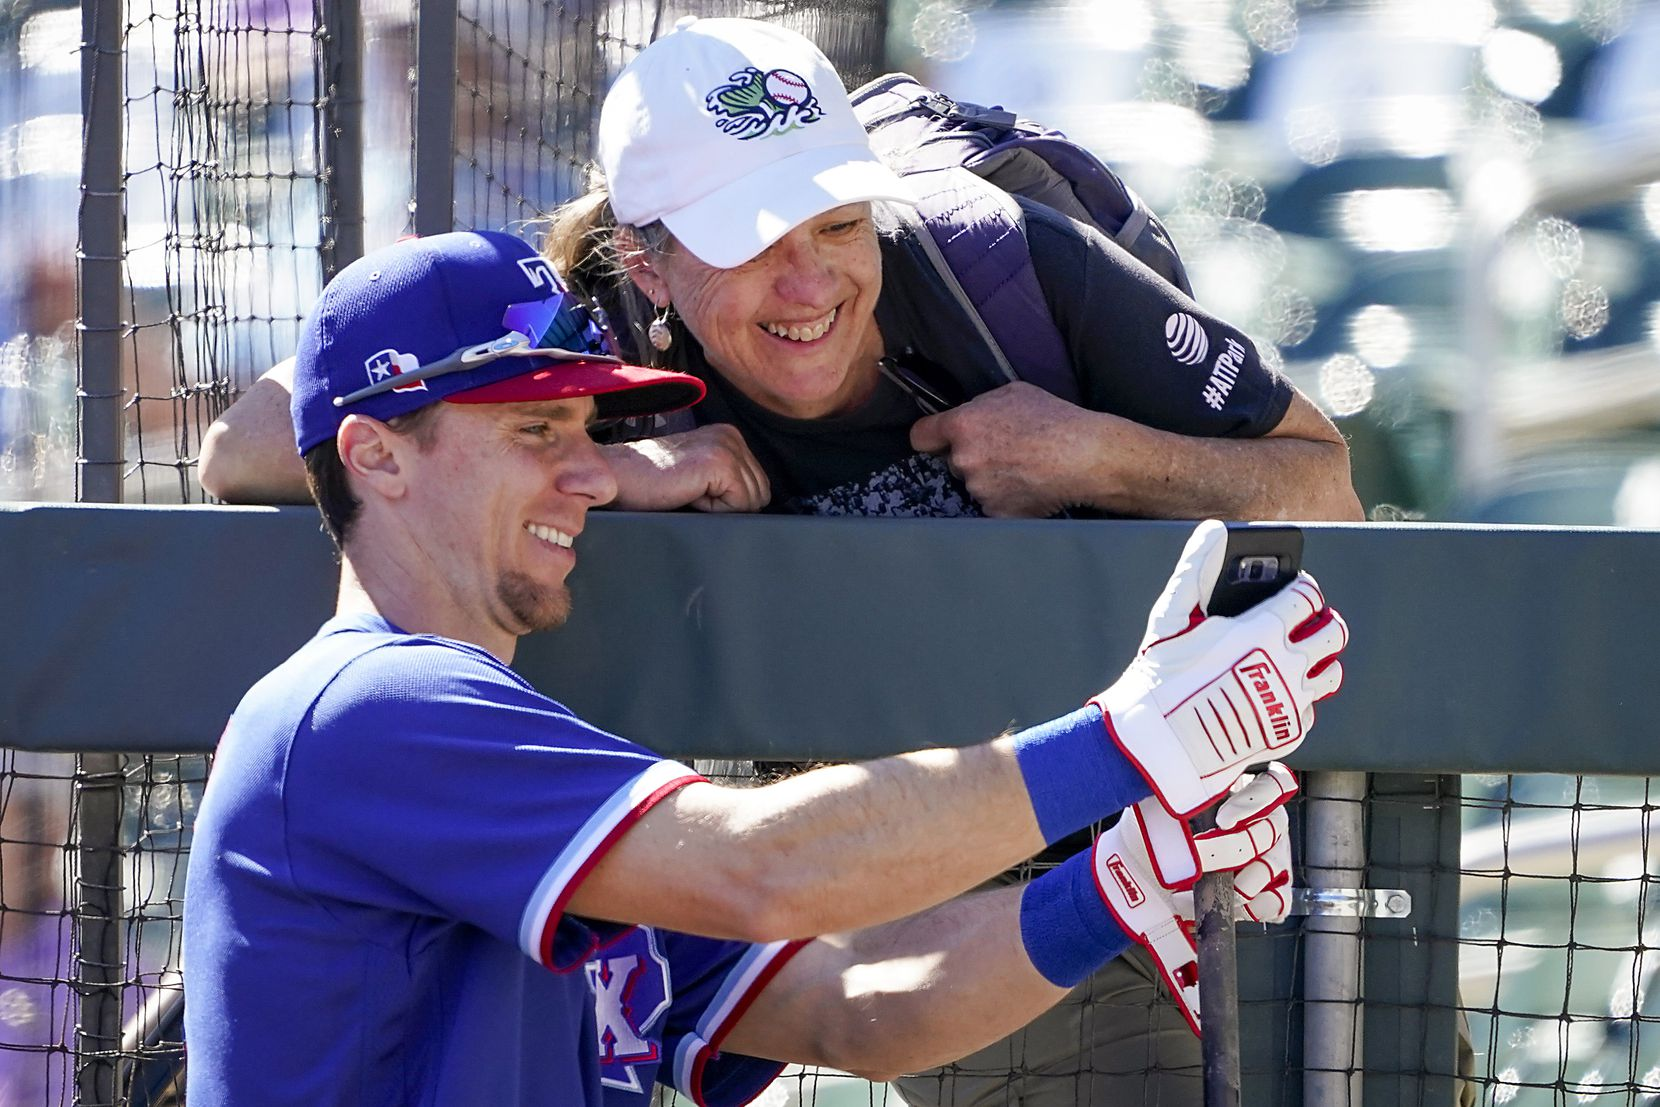 Texas Rangers infielder Matt Duffy takes a selfie with a fan before a spring training game against the Colorado Rockies at Salt River Fields at Talking Stick on Wednesday, Feb. 26, 2020, in Scottsdale, Ariz.